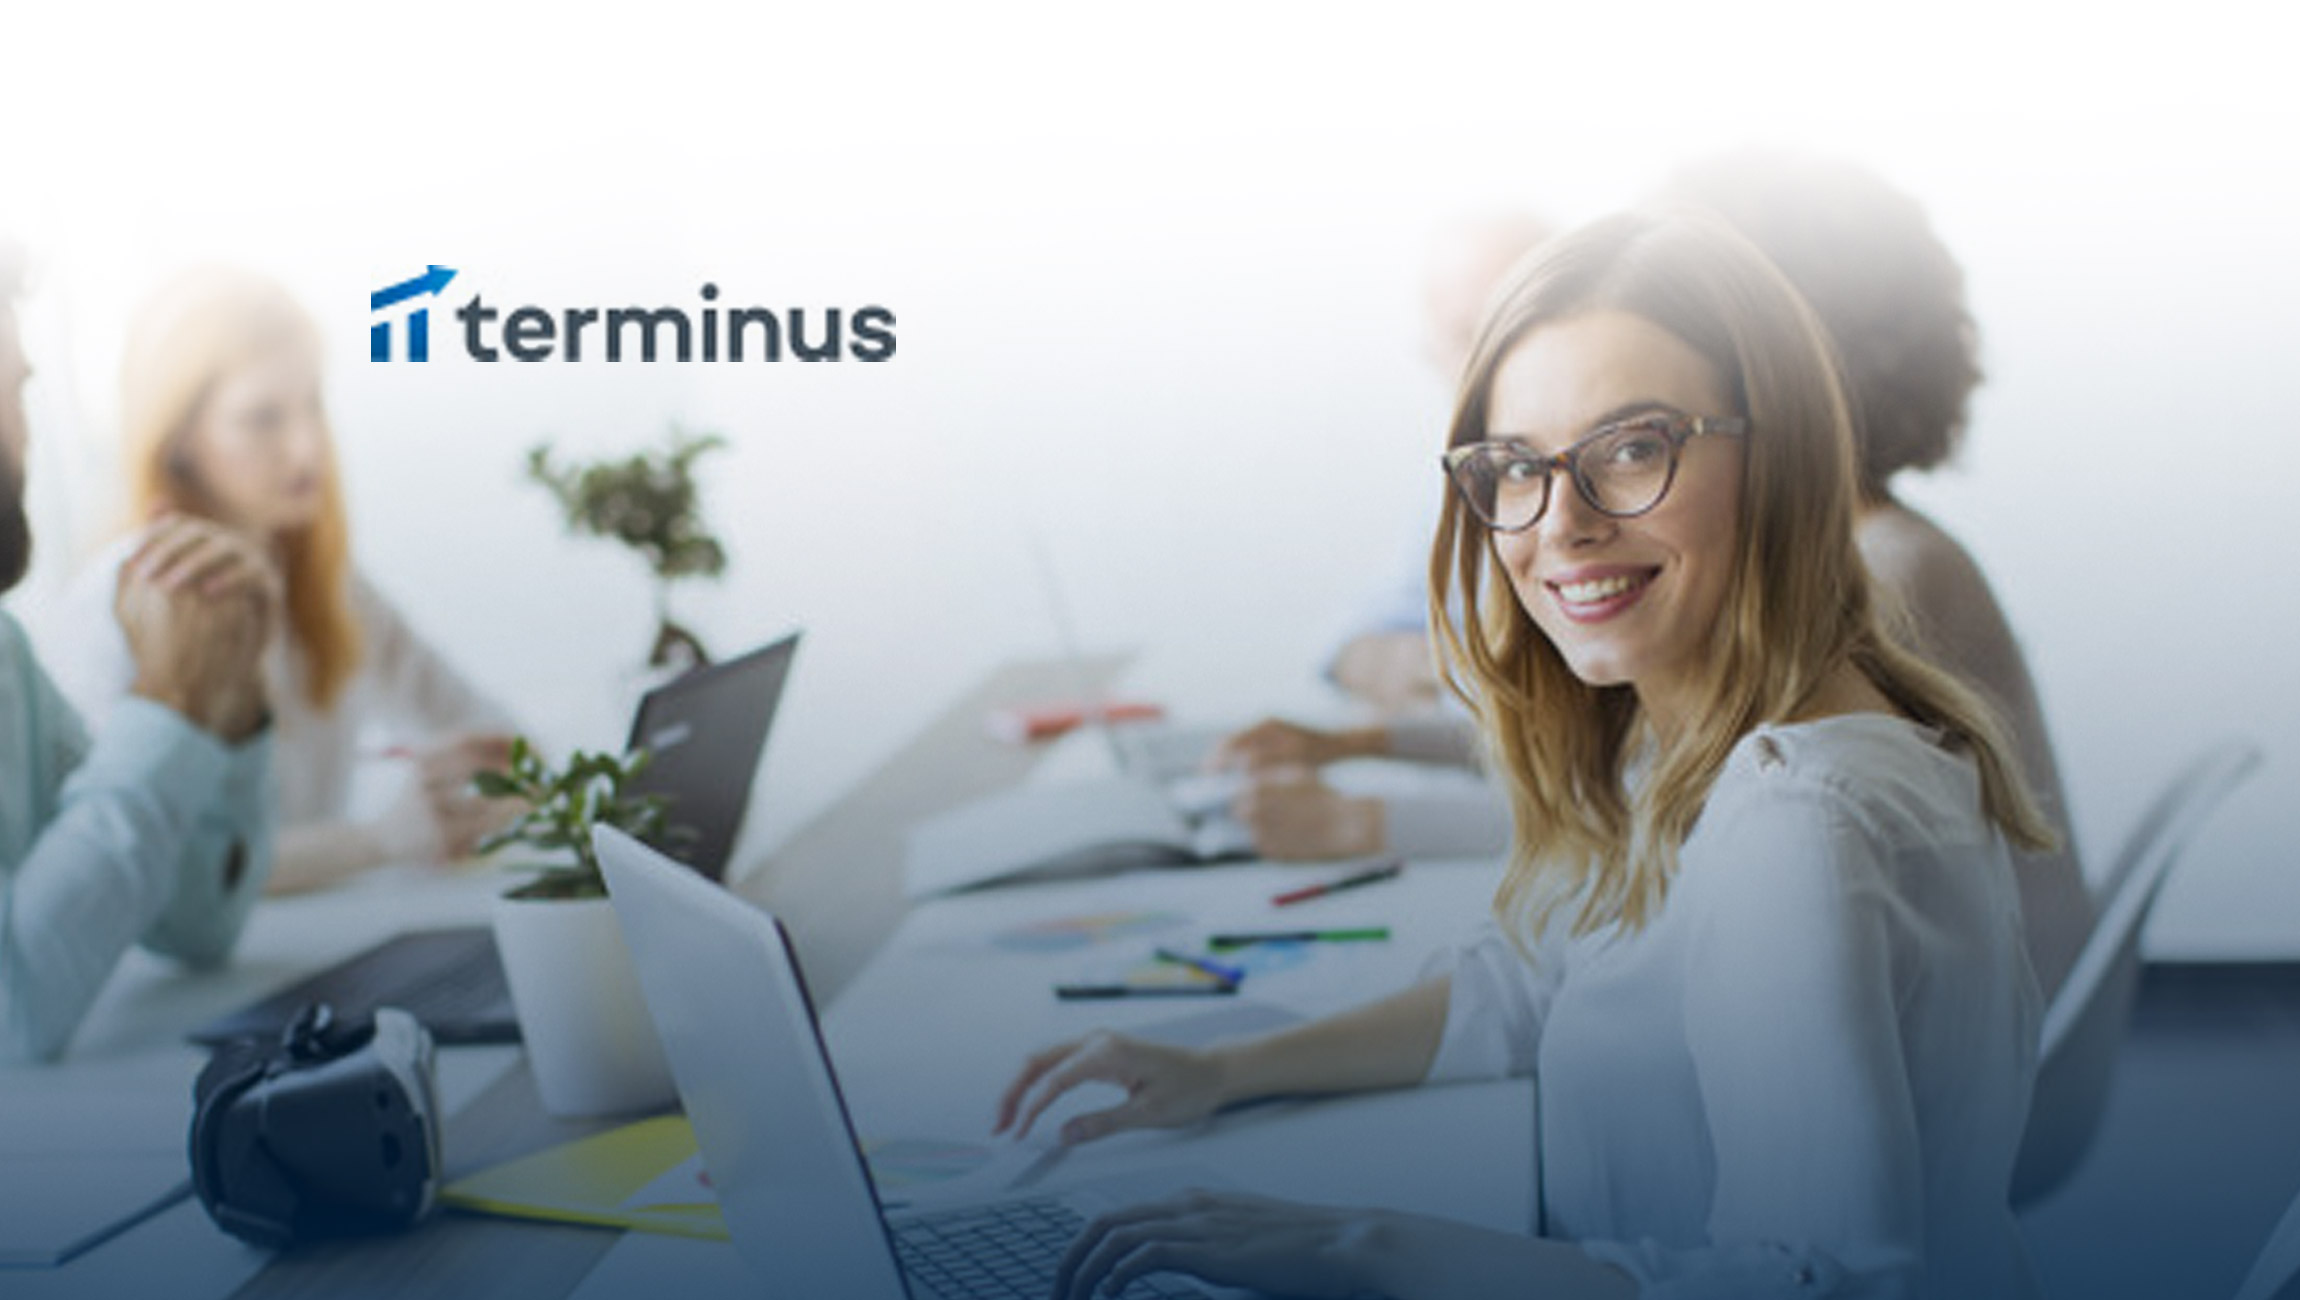 Terminus Rolls Out New Platform Capabilities Including Global Ad Targeting, Chat Playbooks and 'Live View'